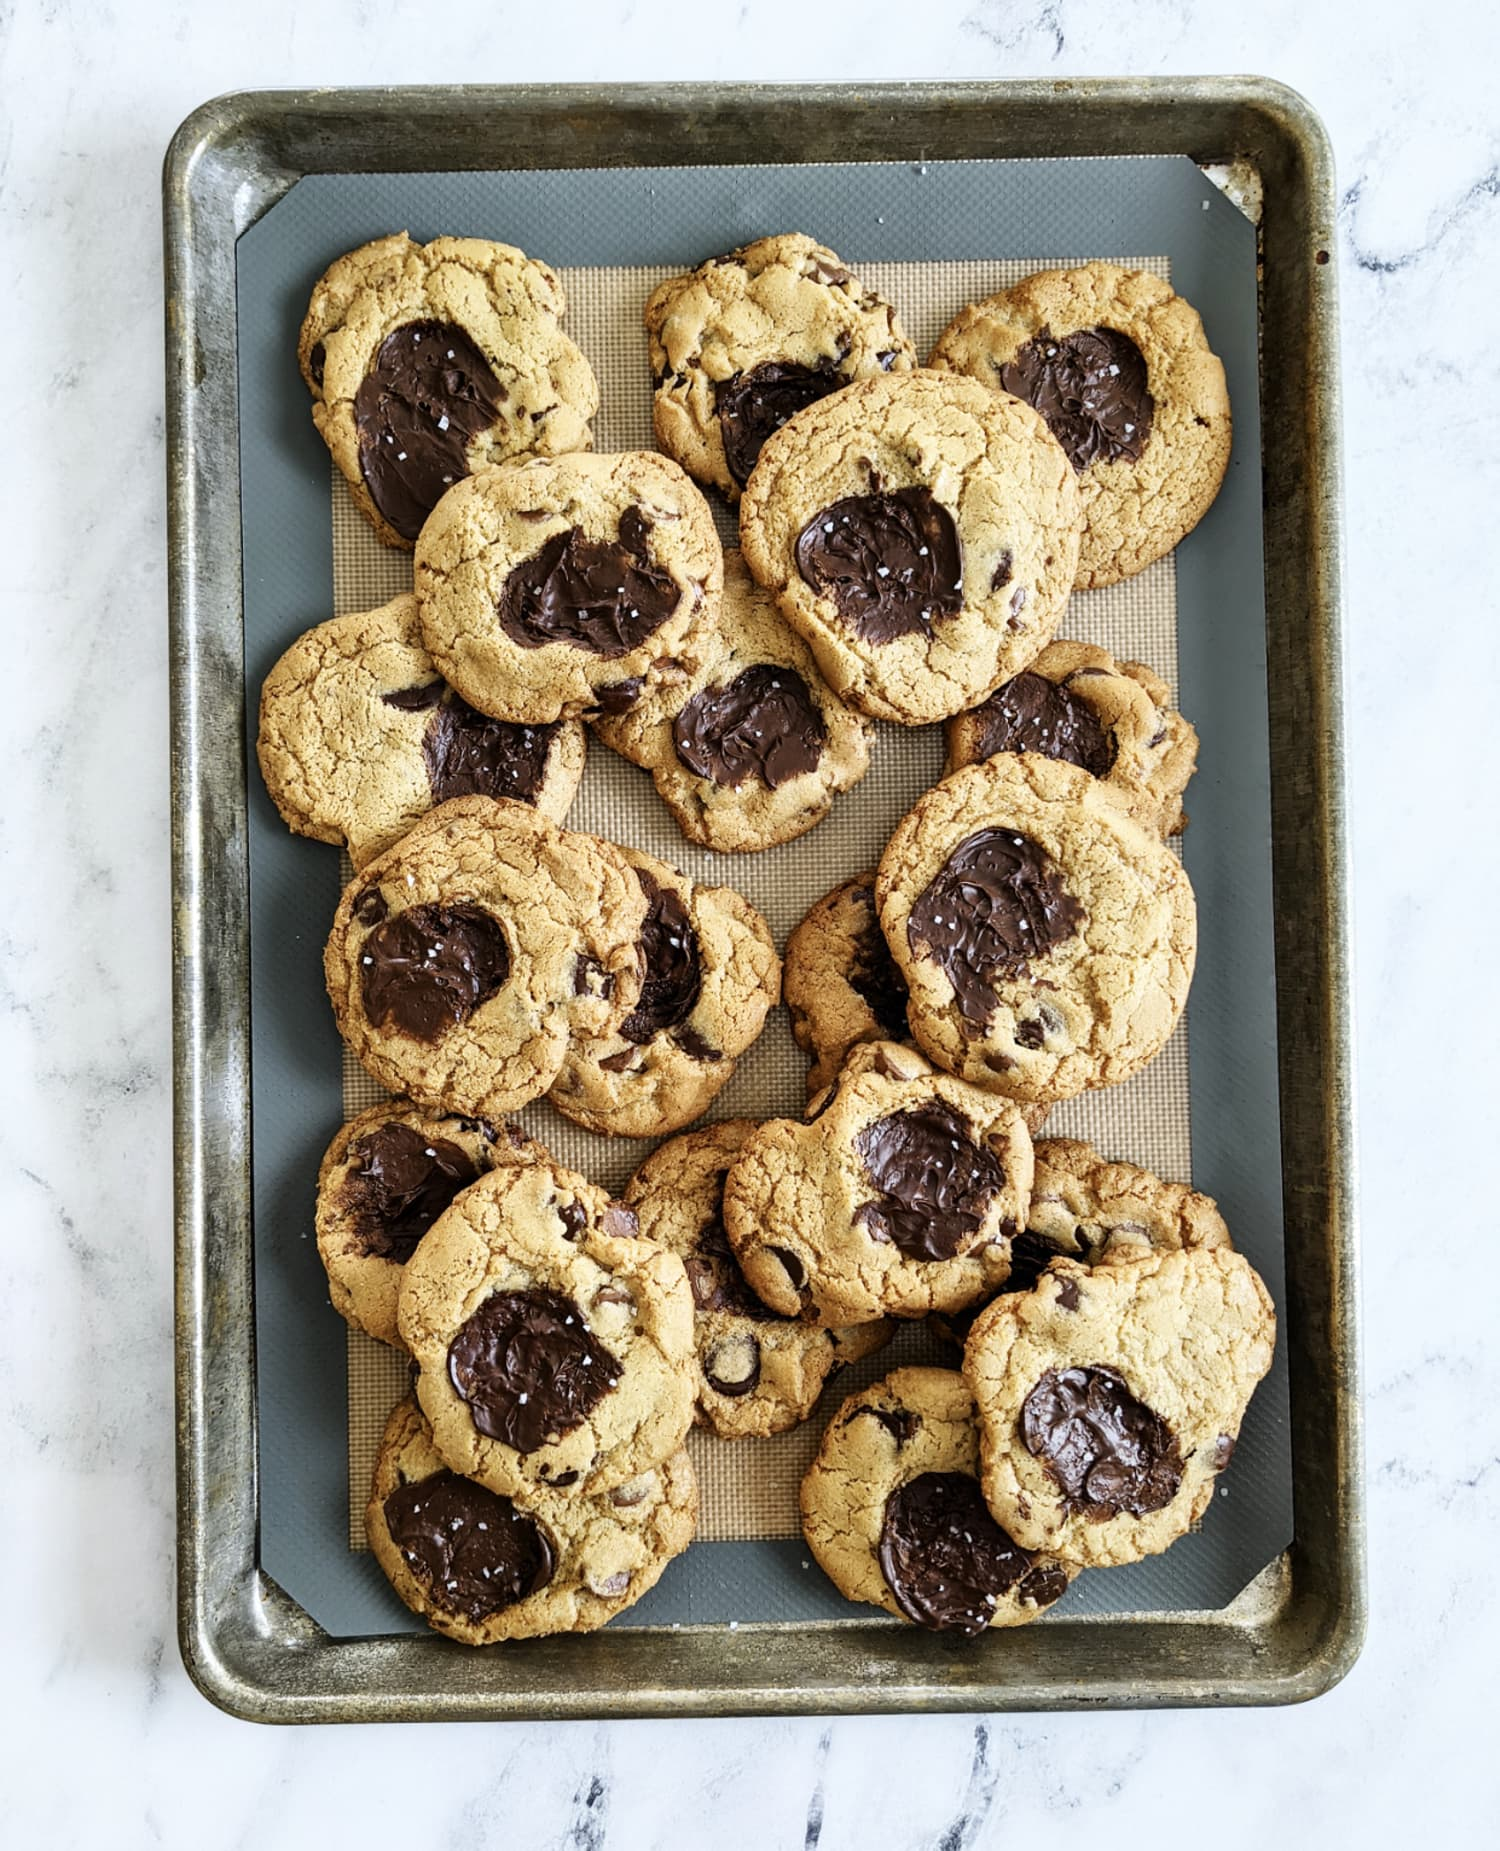 This Popular Chocolate Chip Cookie Recipe Has One Super-Smart Tip That Anyone Can Steal